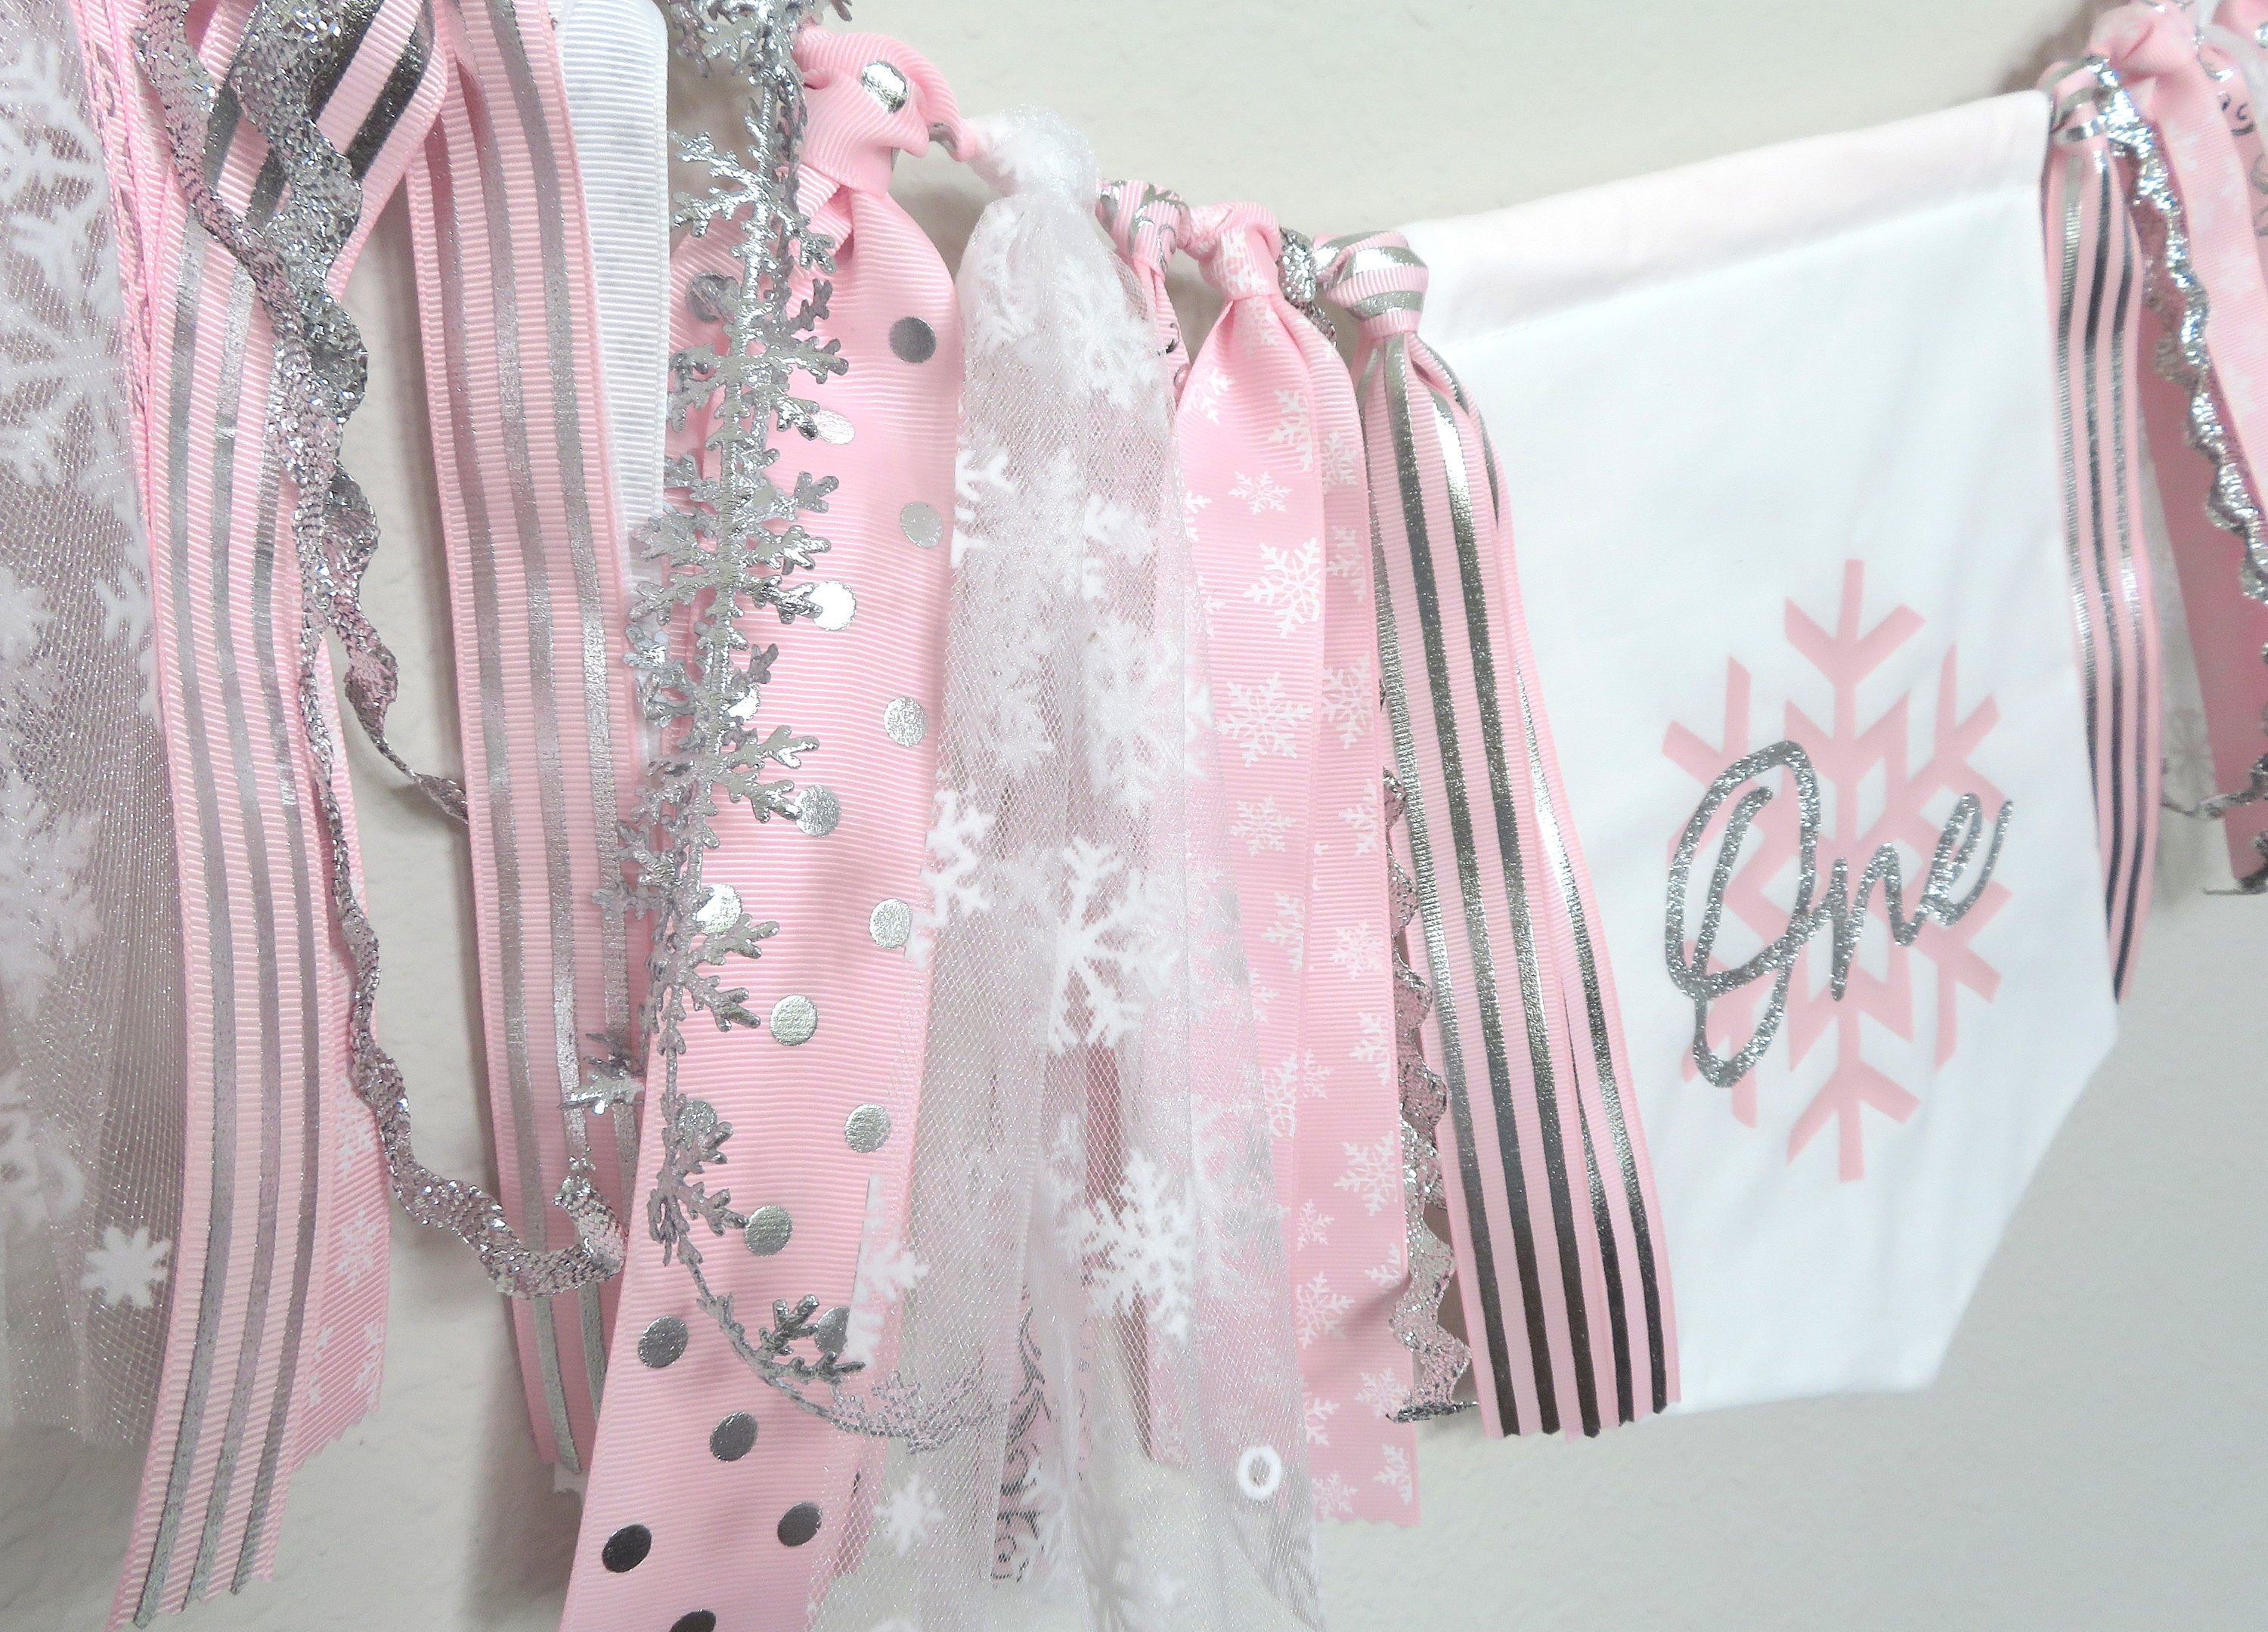 Snowflake High Chair Banner for First Birthday in pink and silver - winter ONEderland banner, snowflake banner, winter onederland decor